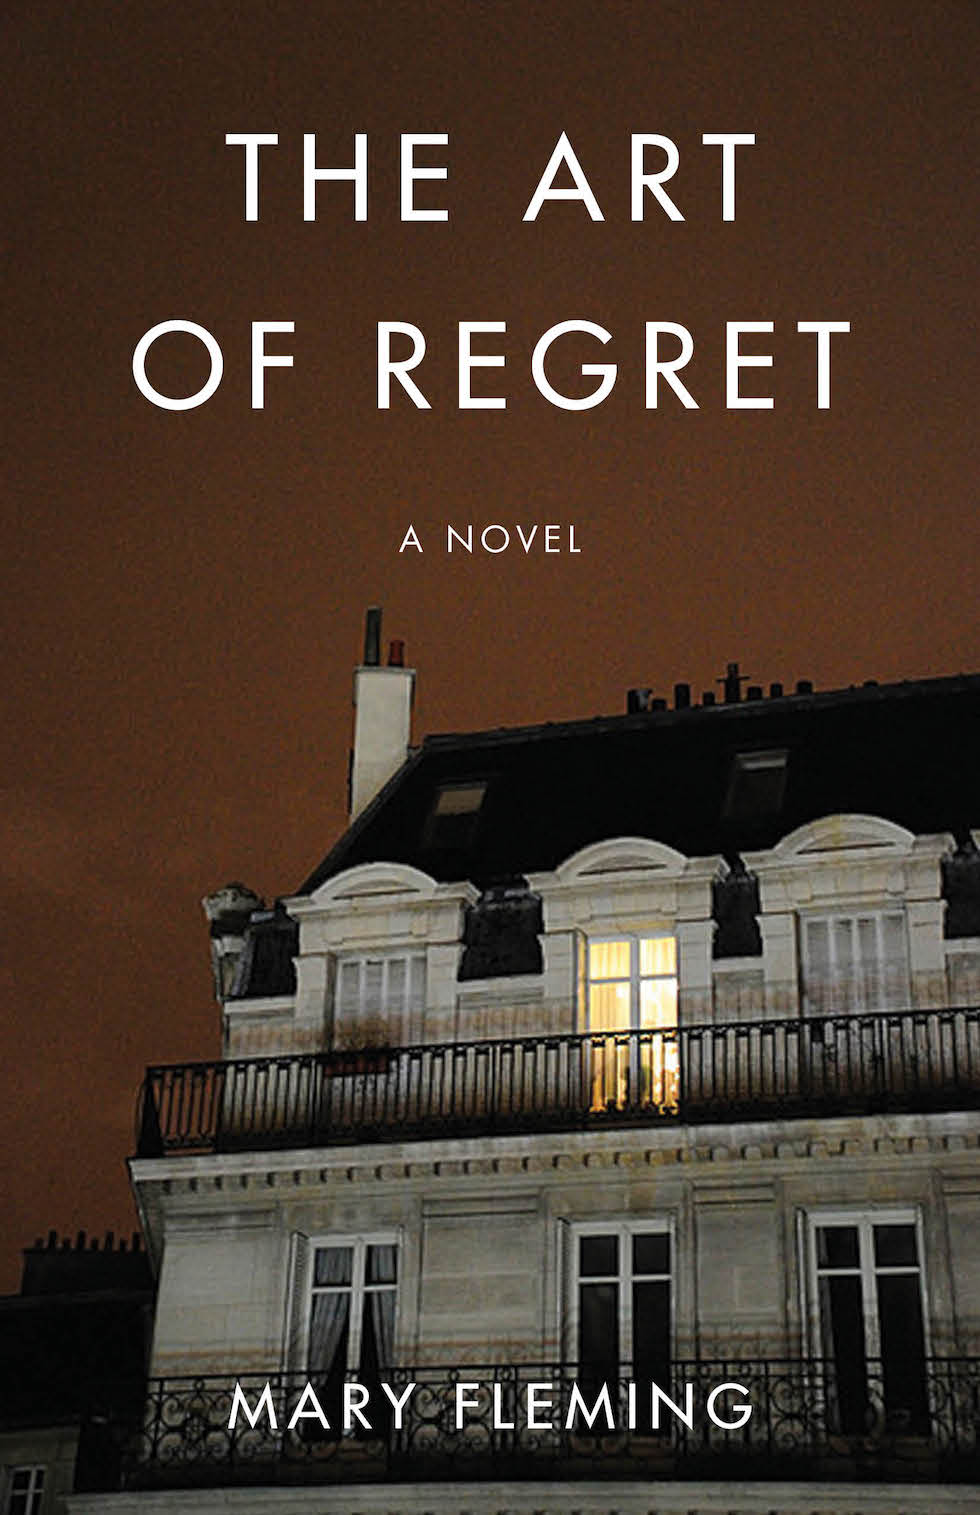 The Art of Regret - Coming October 2019!In The Art of Regret, a novel by Mary Fleming, late-thirty-something American Trevor McFarquhar is doing his best to lead an aimless and apathetic existence in Paris. Full of resentment and unresolved feelings toward his bourgeois family, and still mourning the long-ago deaths of his young sister and, a year later, his father, Trevor abandoned an early career as a photographer and now half-heartedly runs a bicycle shop, while pursuing various women he terms Casuals. But the 1995 French transport strike and a liaison dangereuse with his sister-in-law upend Trevor's plan for non-living. Five years later, humbled by his immoral act, tired of his desultory life and actually missing his family, Trevor is given a second chance to find redemption and even love.